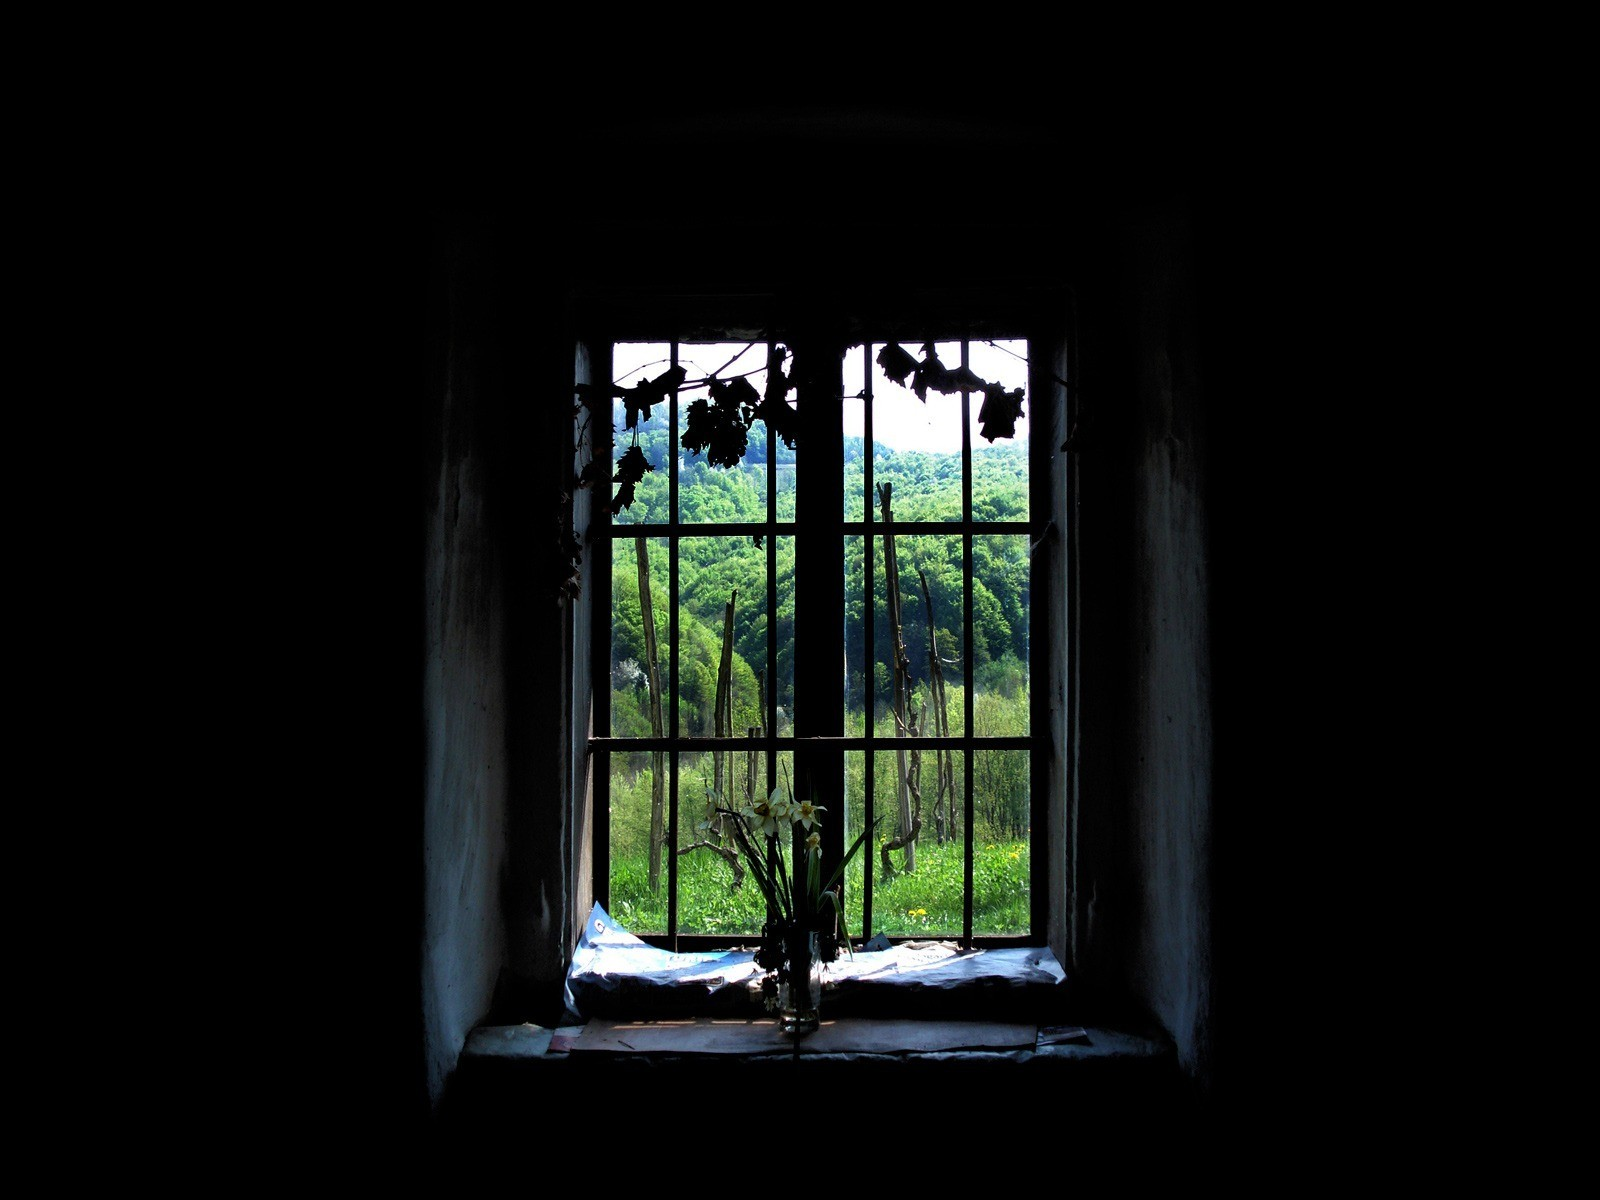 Window wallpaper and background image 1600x1200 id 215919 for Fenster 400x400